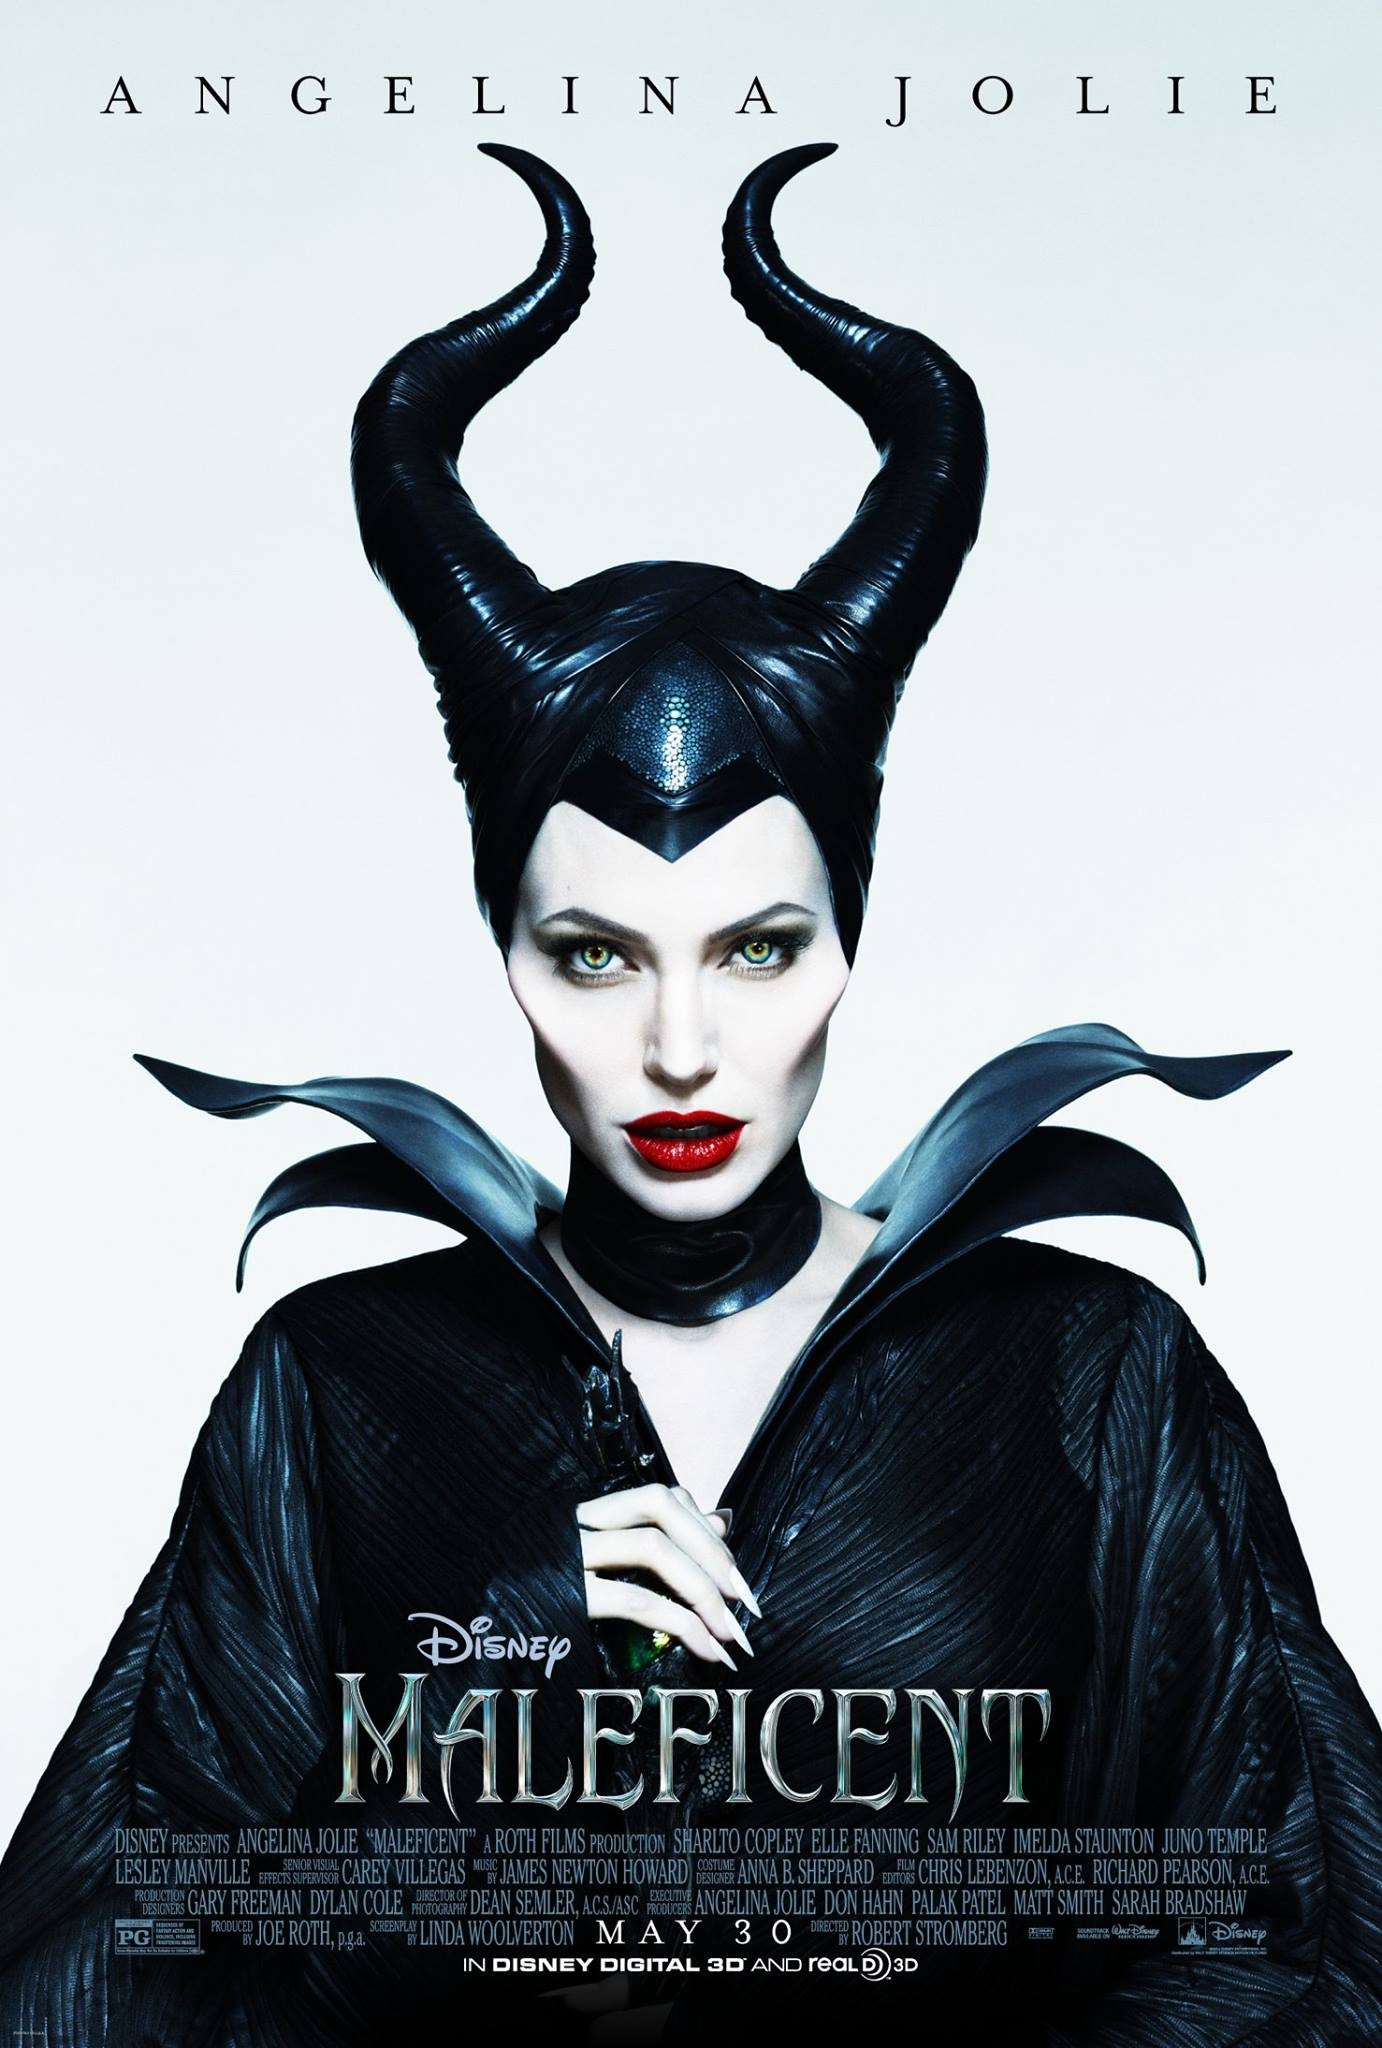 Maleficent-Official Poster Banner PROMO XLG-10MARCO2014-02